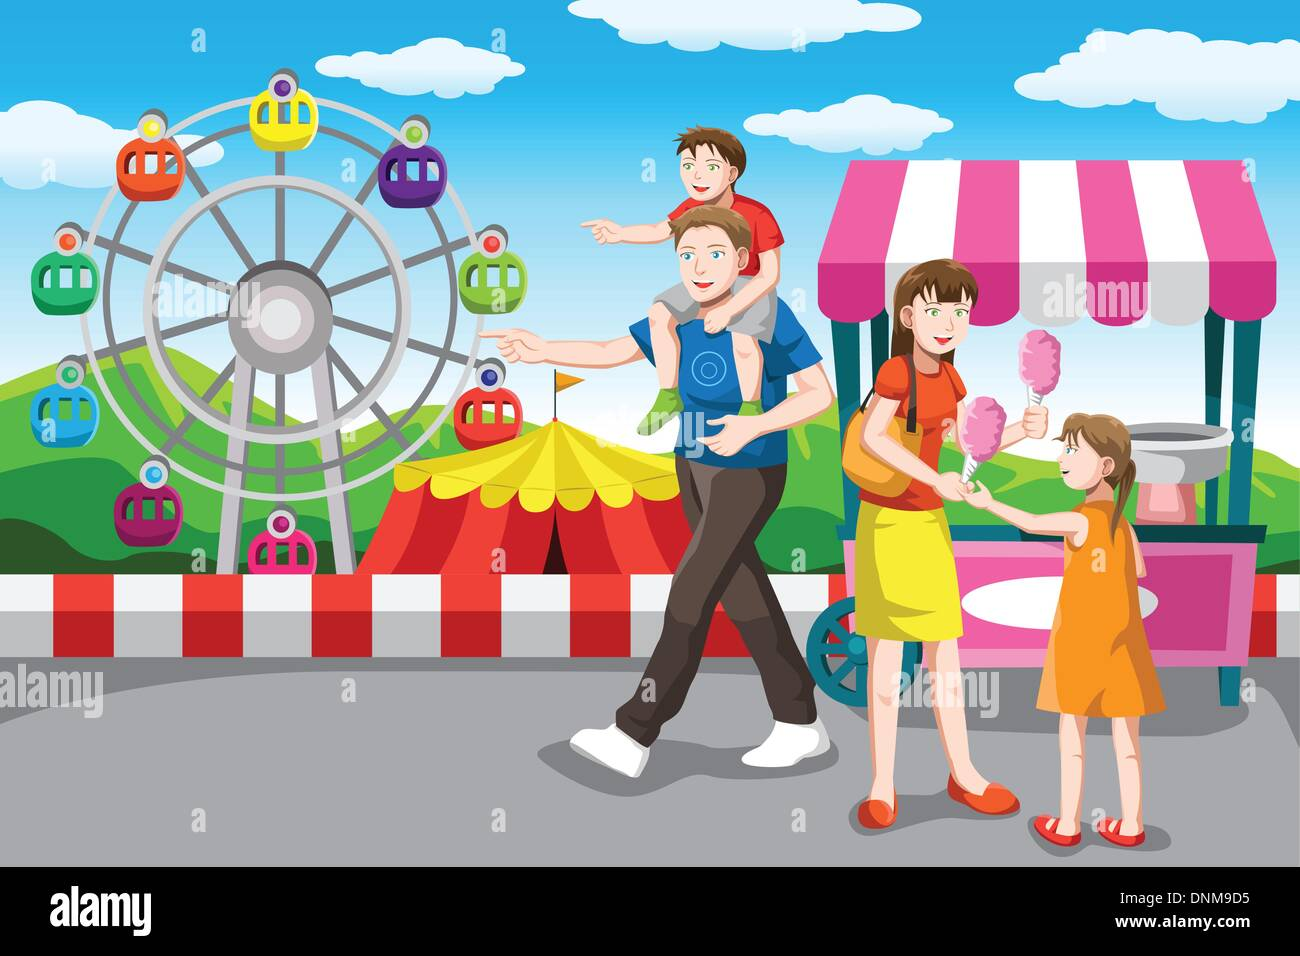 A vector illustration of a happy family recreation in the amusement park - Stock Vector